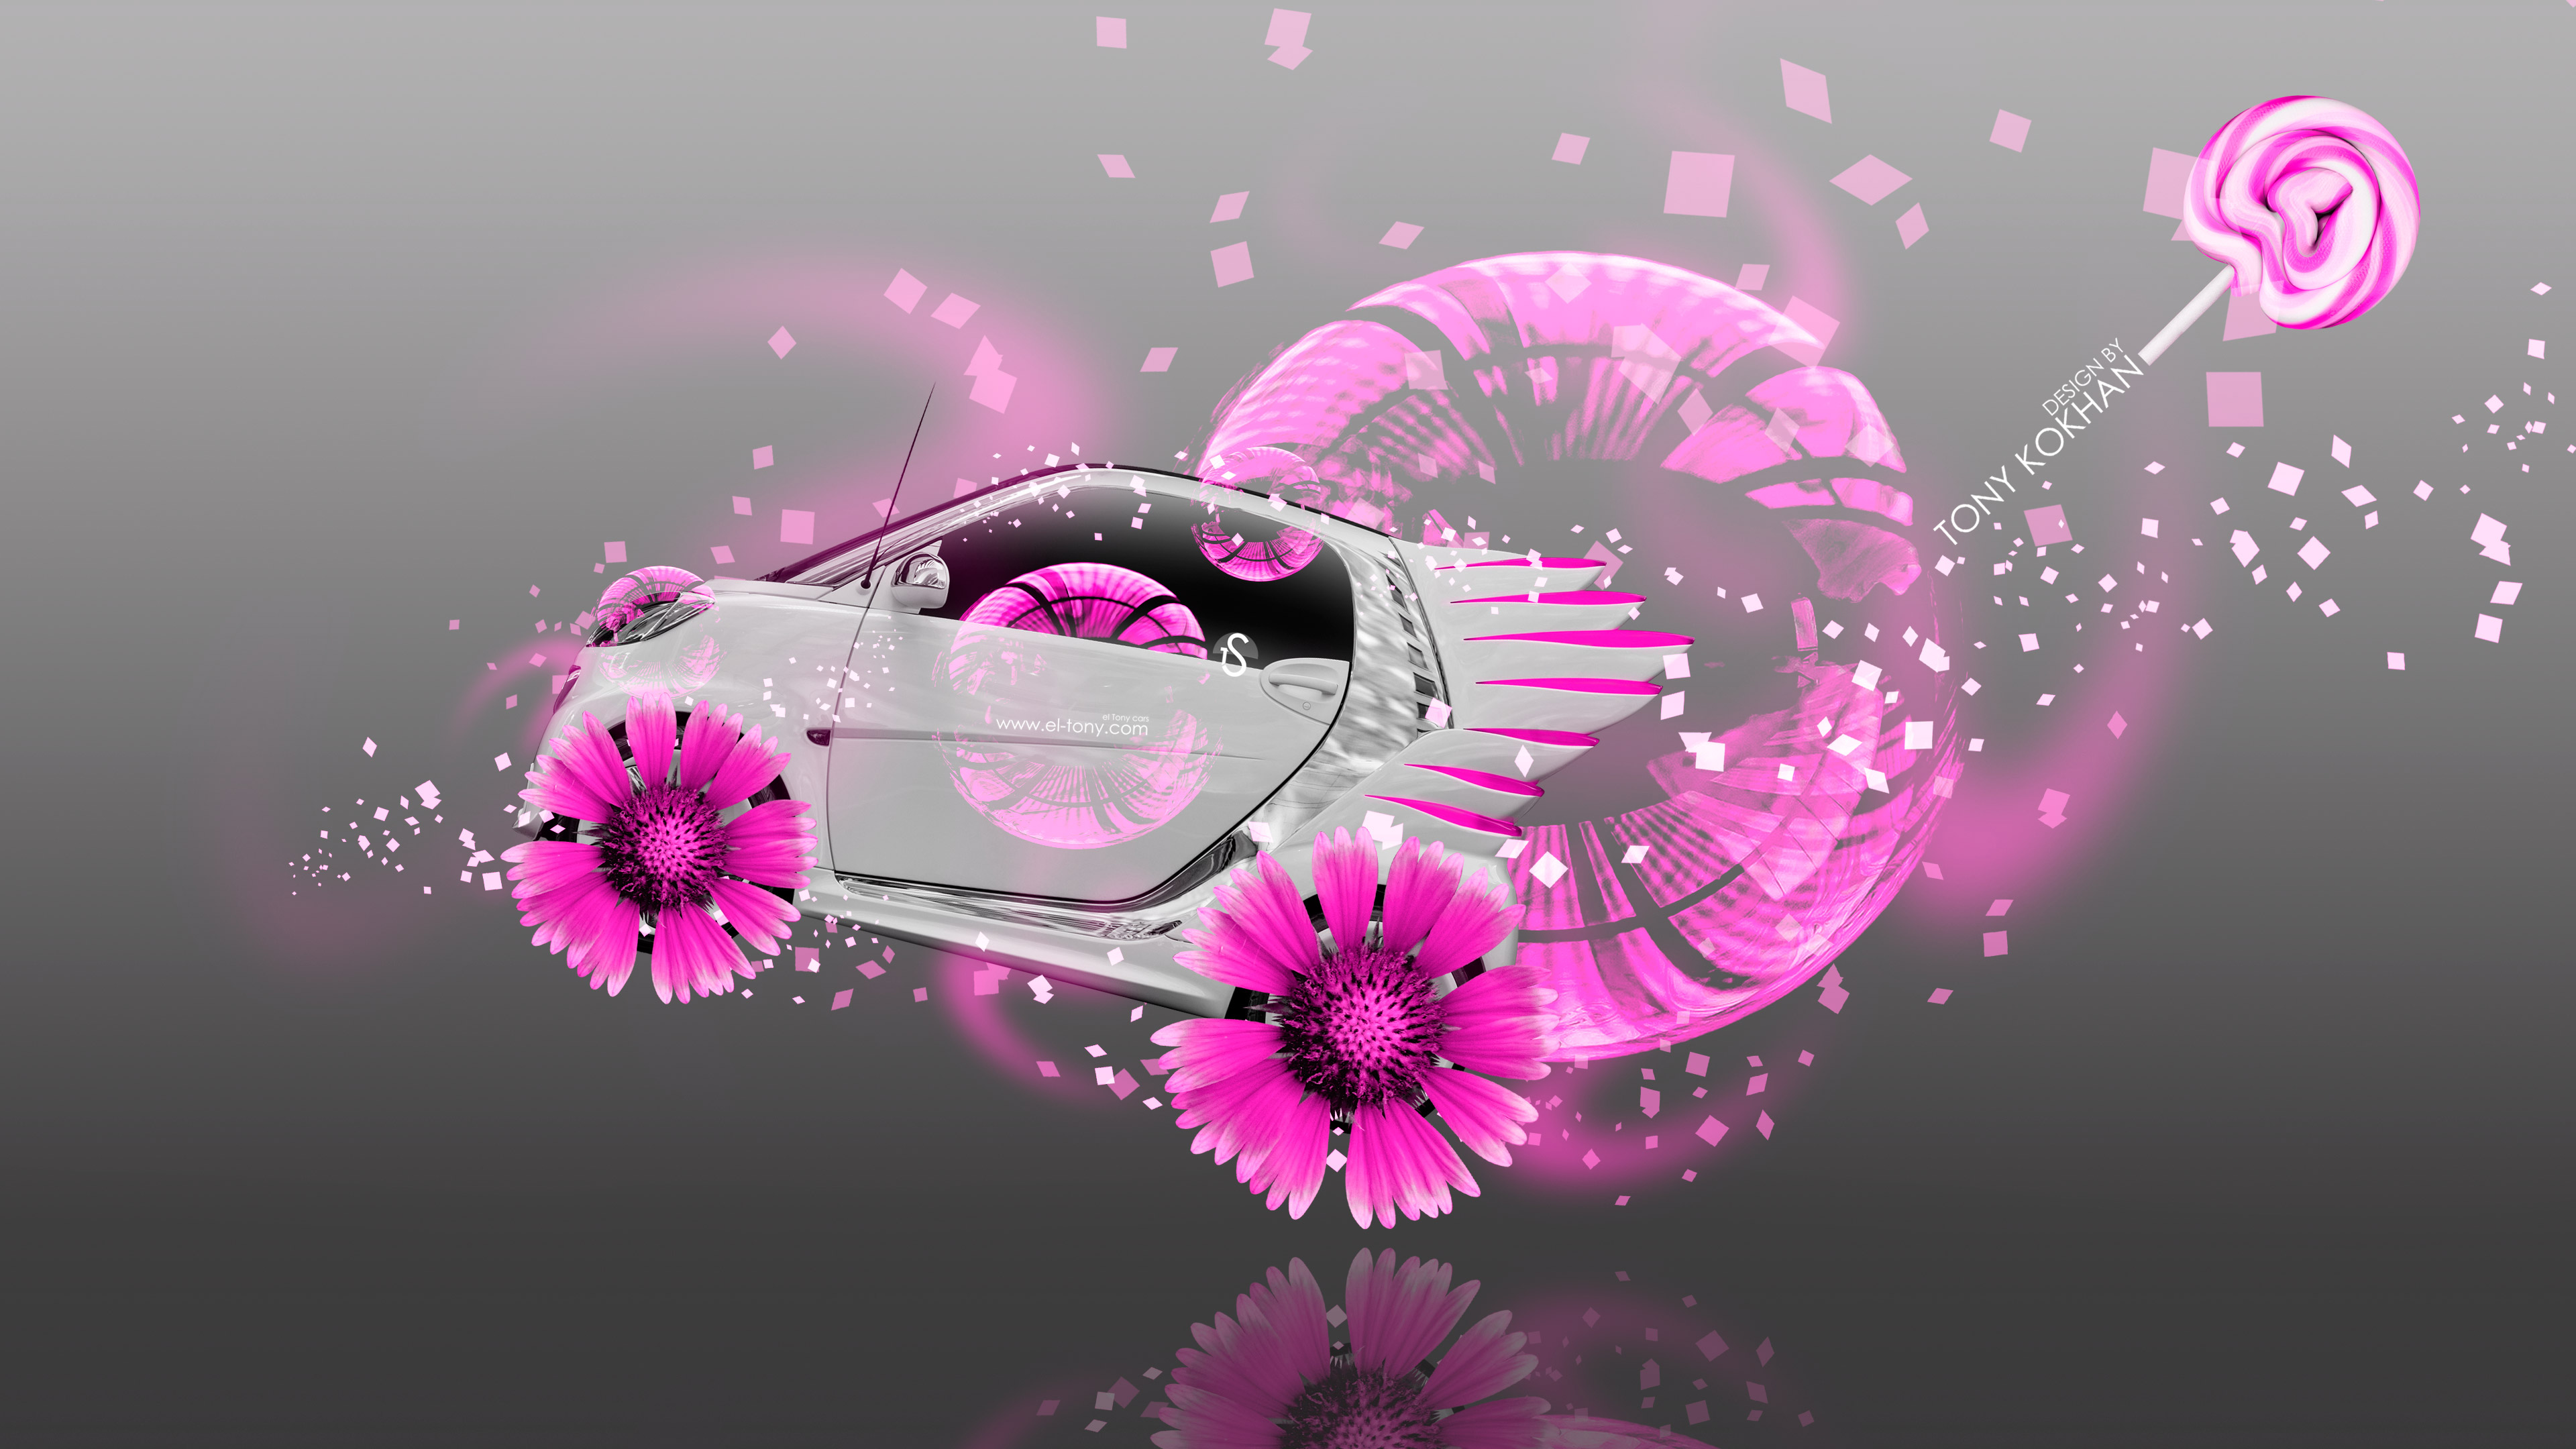 Smart-Electro-Side-Fantasy-Fly-Flowers-Car-2014-Pink-Neon-Colors-4K-Wallpapers-design-by-Tony-Kokhan-[www.el-tony.com]